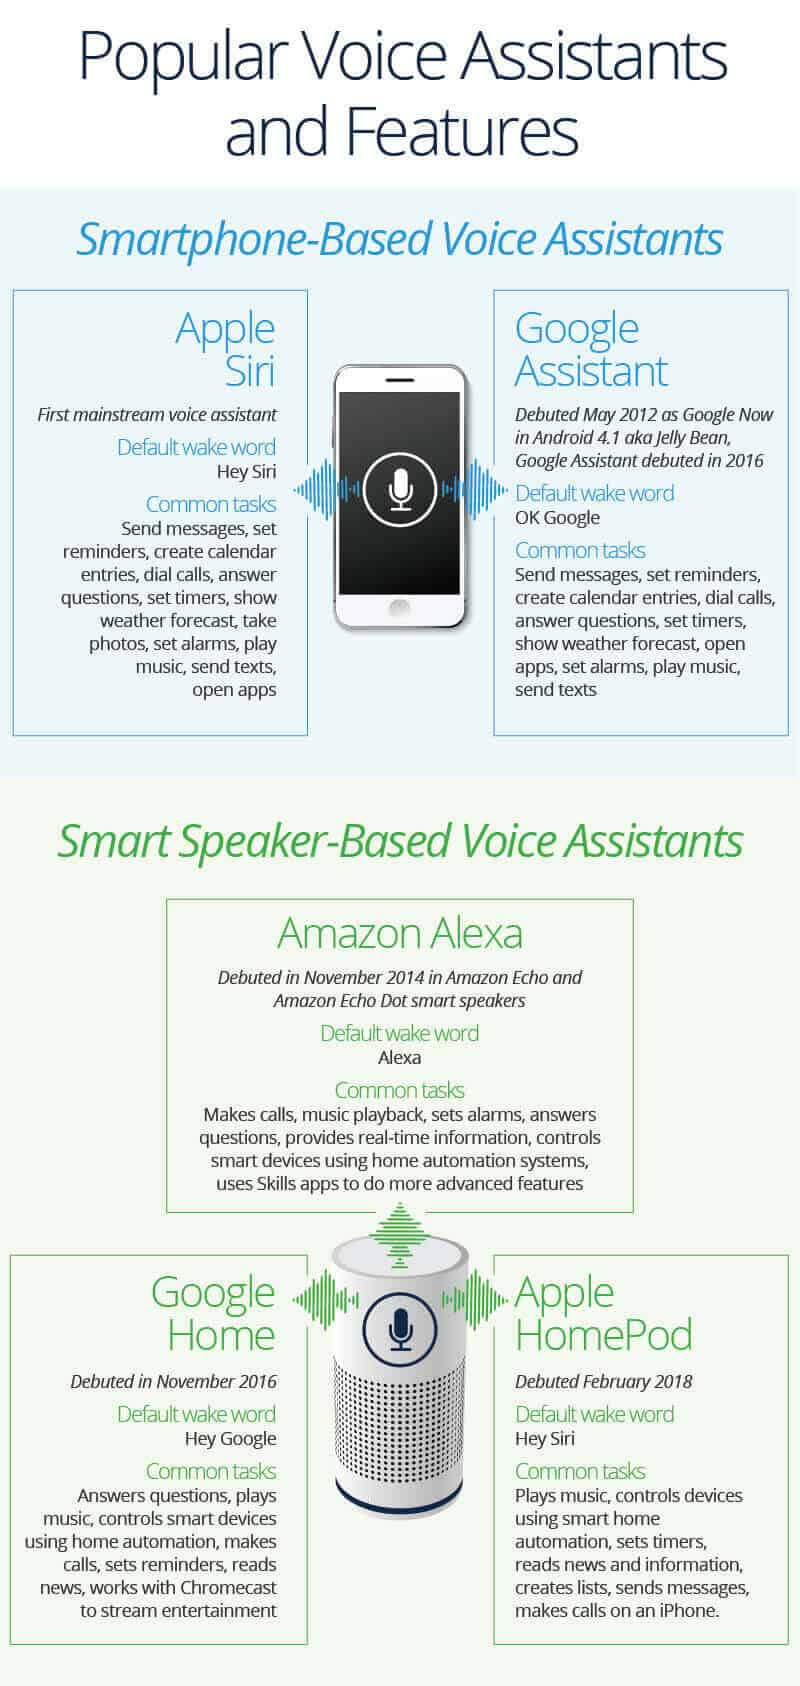 Popular Voice Assistants and Features